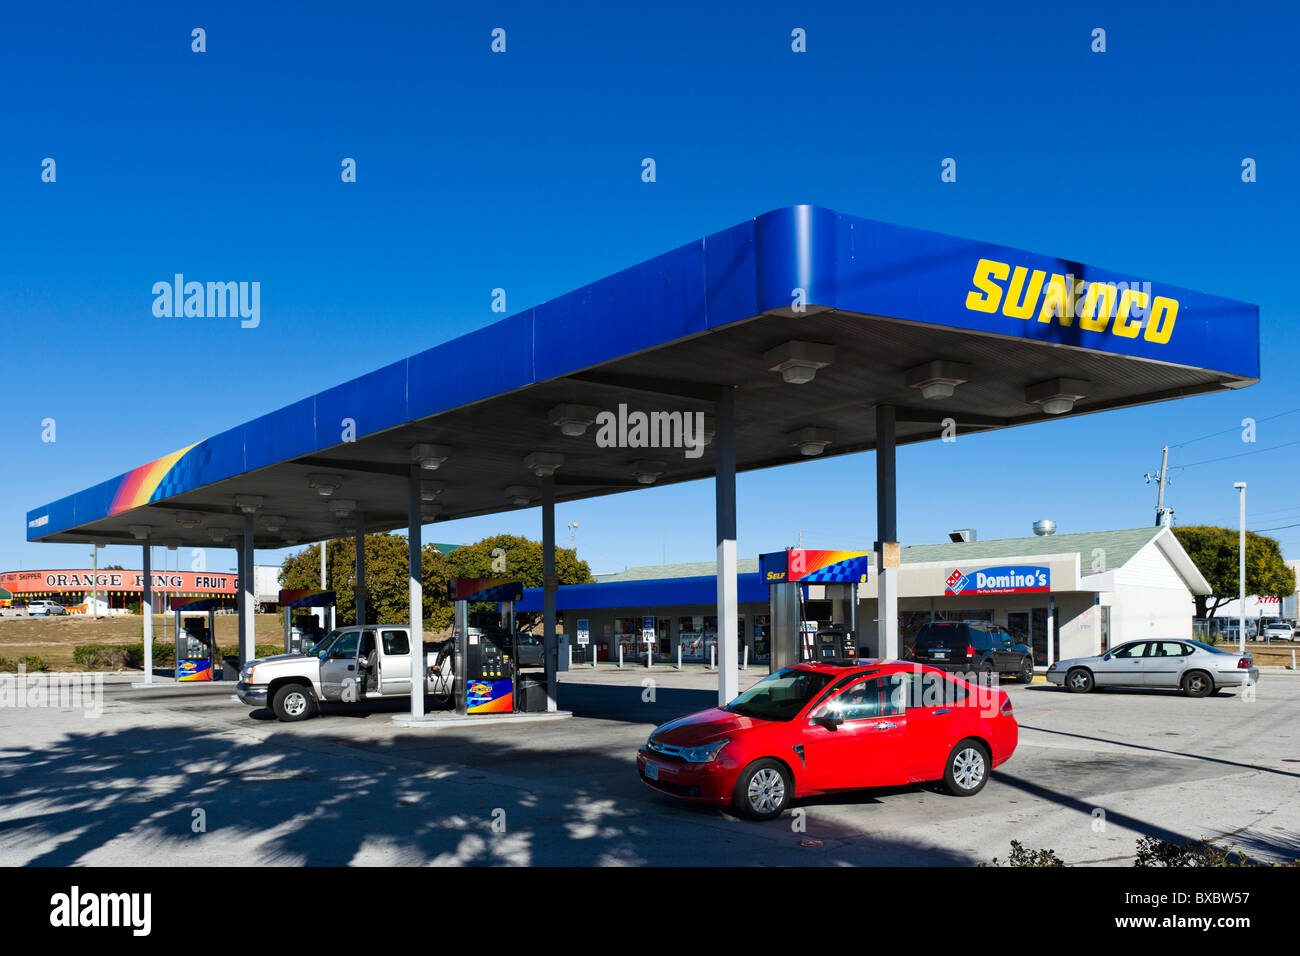 Sunoco gas station, Haines City, Central Florida, USA - Stock Image